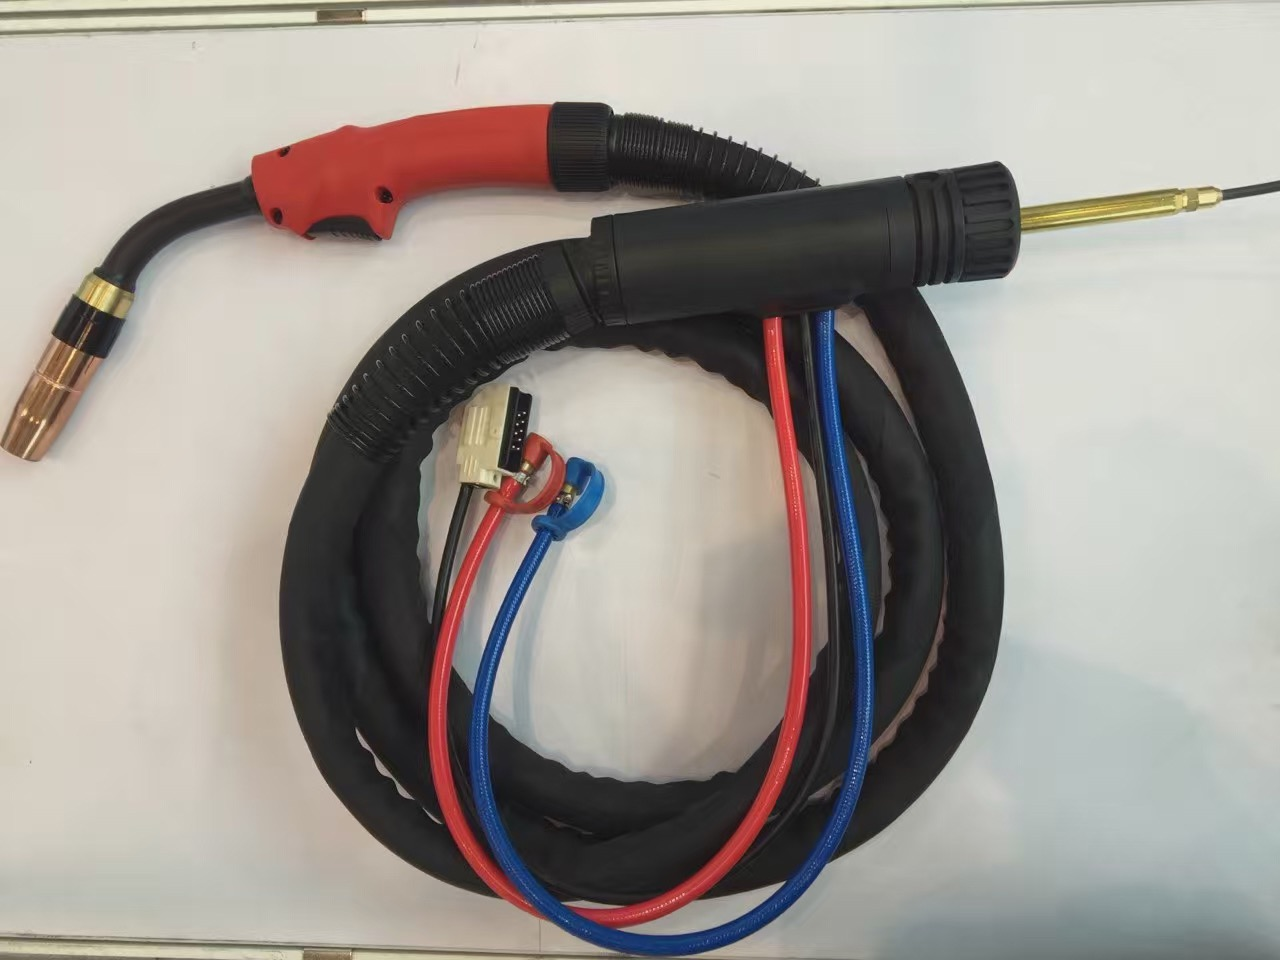 Fronius AW4000 Water Cooled Welding Torch